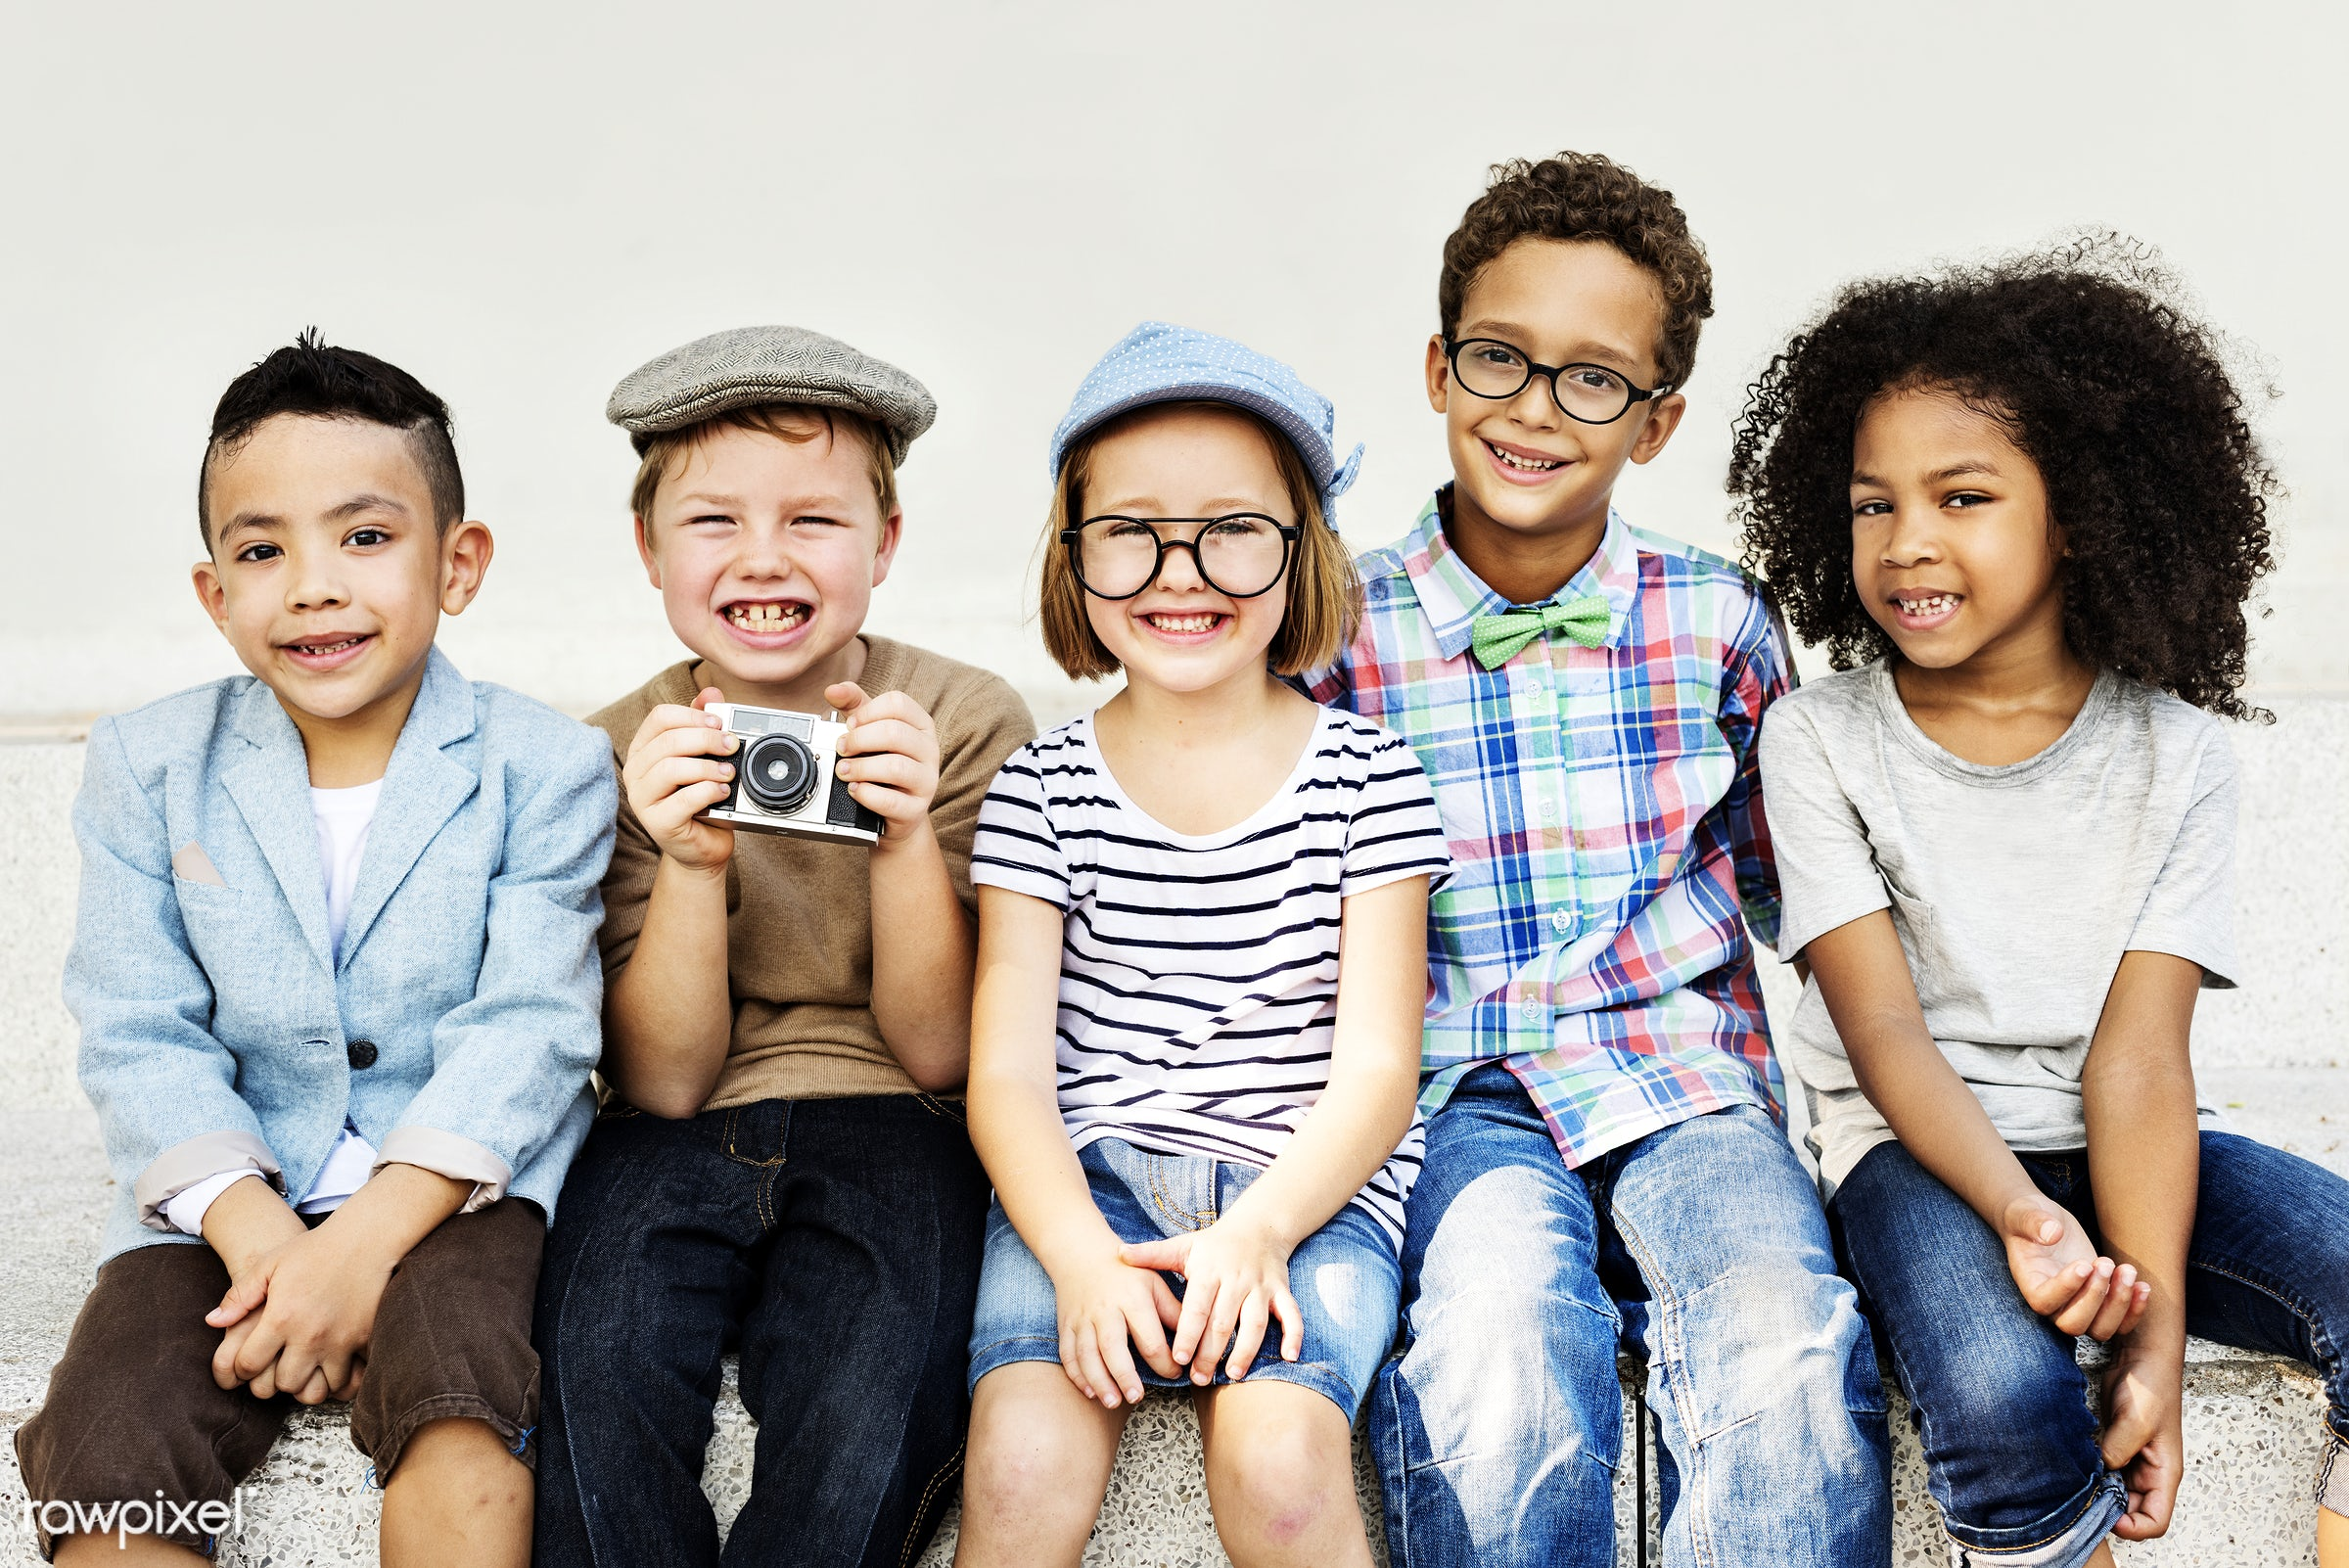 activities, adorable, african descent, asian ethnicity, bonding, boys, casual, cheerful, child, childhood, children,...